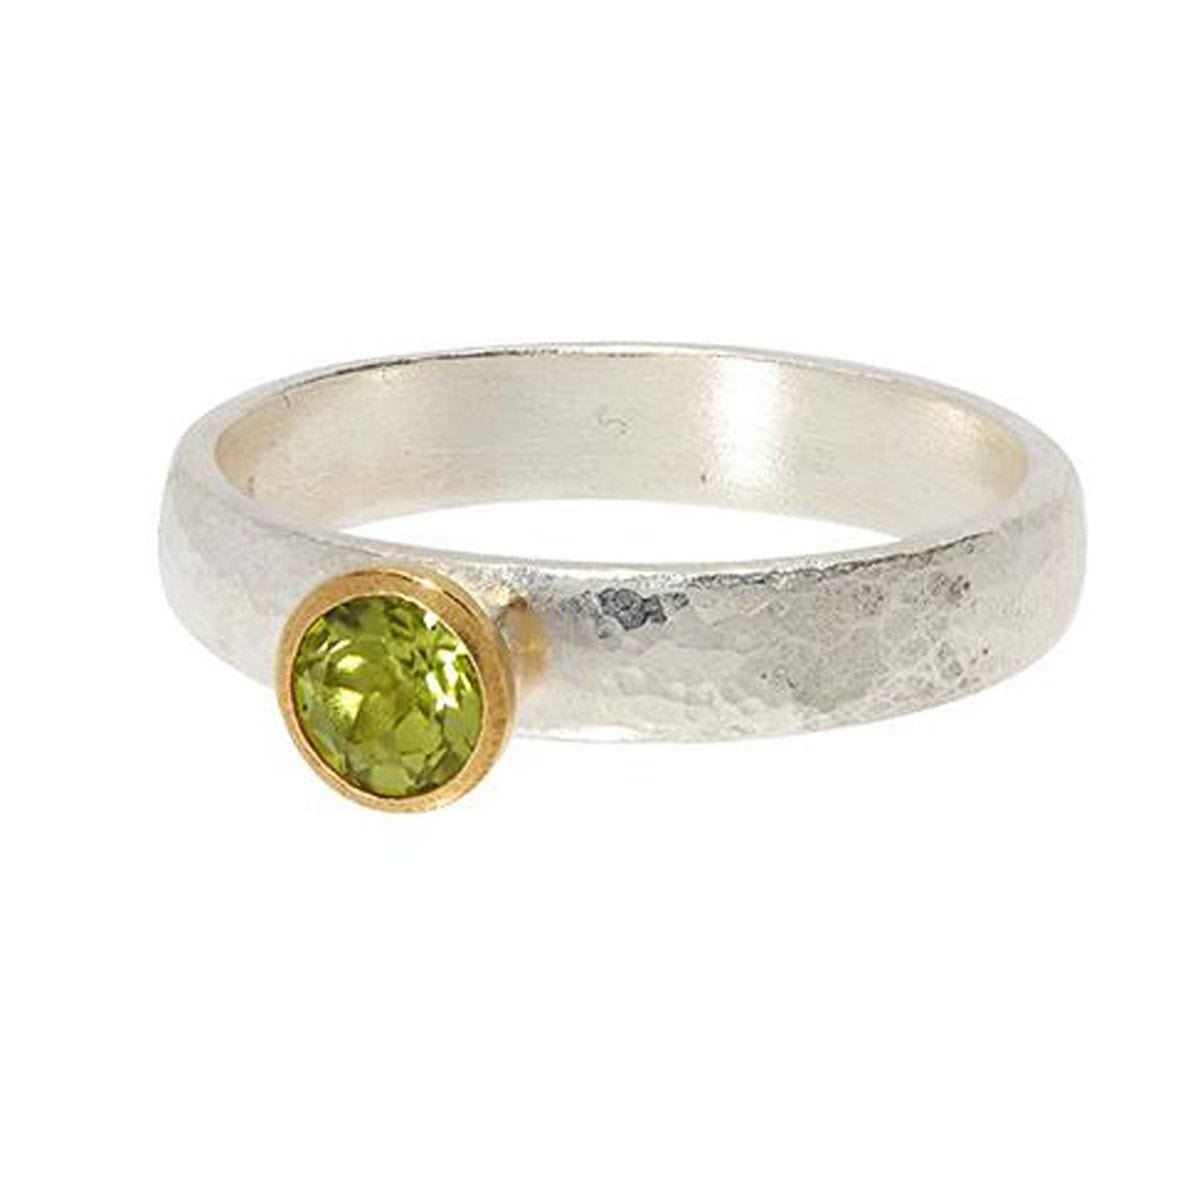 Round Peridot Skittle Ring - SR-390-PD5-RD